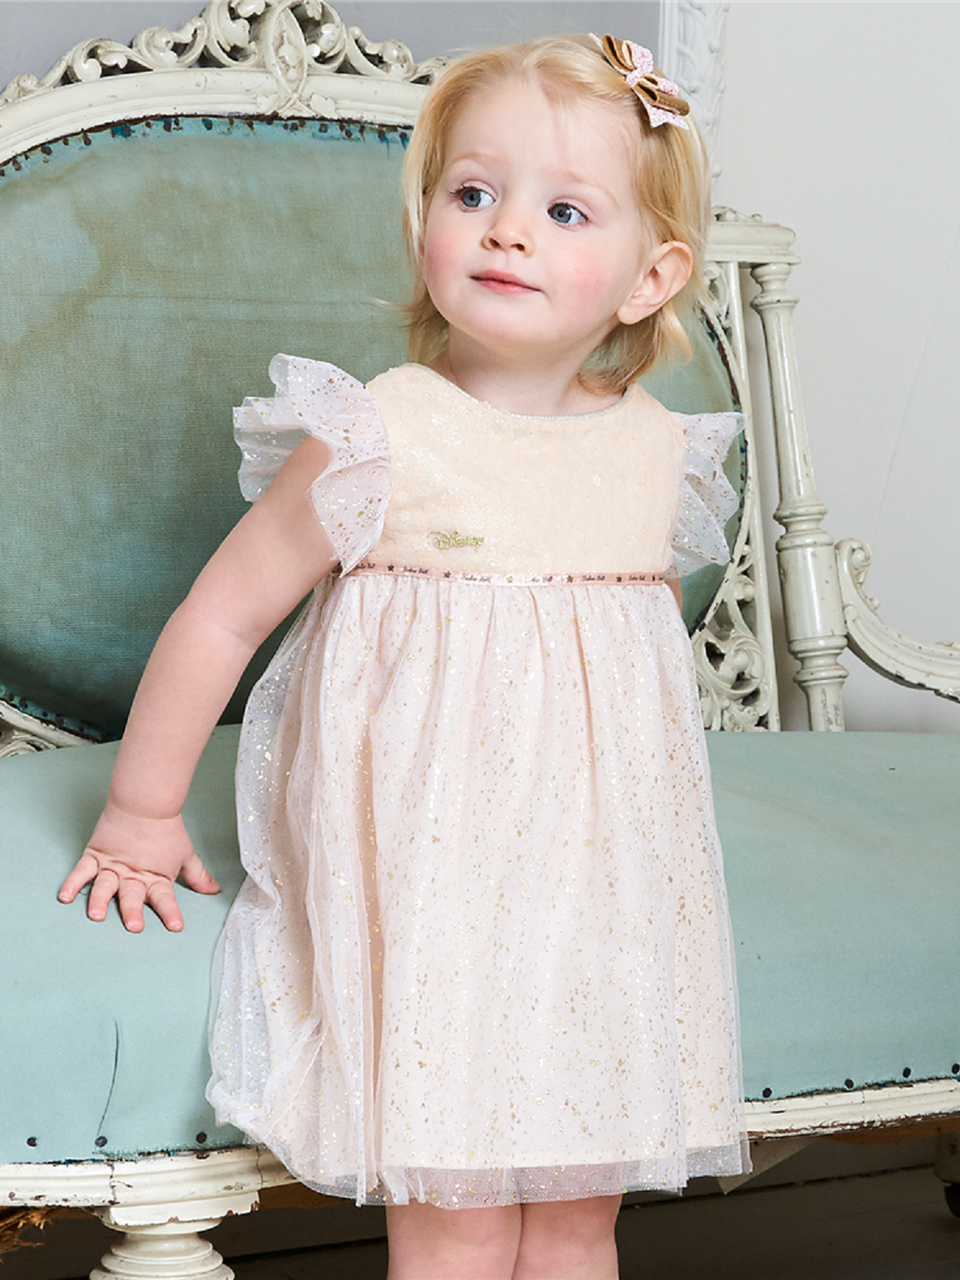 2efe69568c65f Baby Disney Boutique Tinkerbell Occasion Dress. Previous. Image 1 Click to  view full size image  Image 2